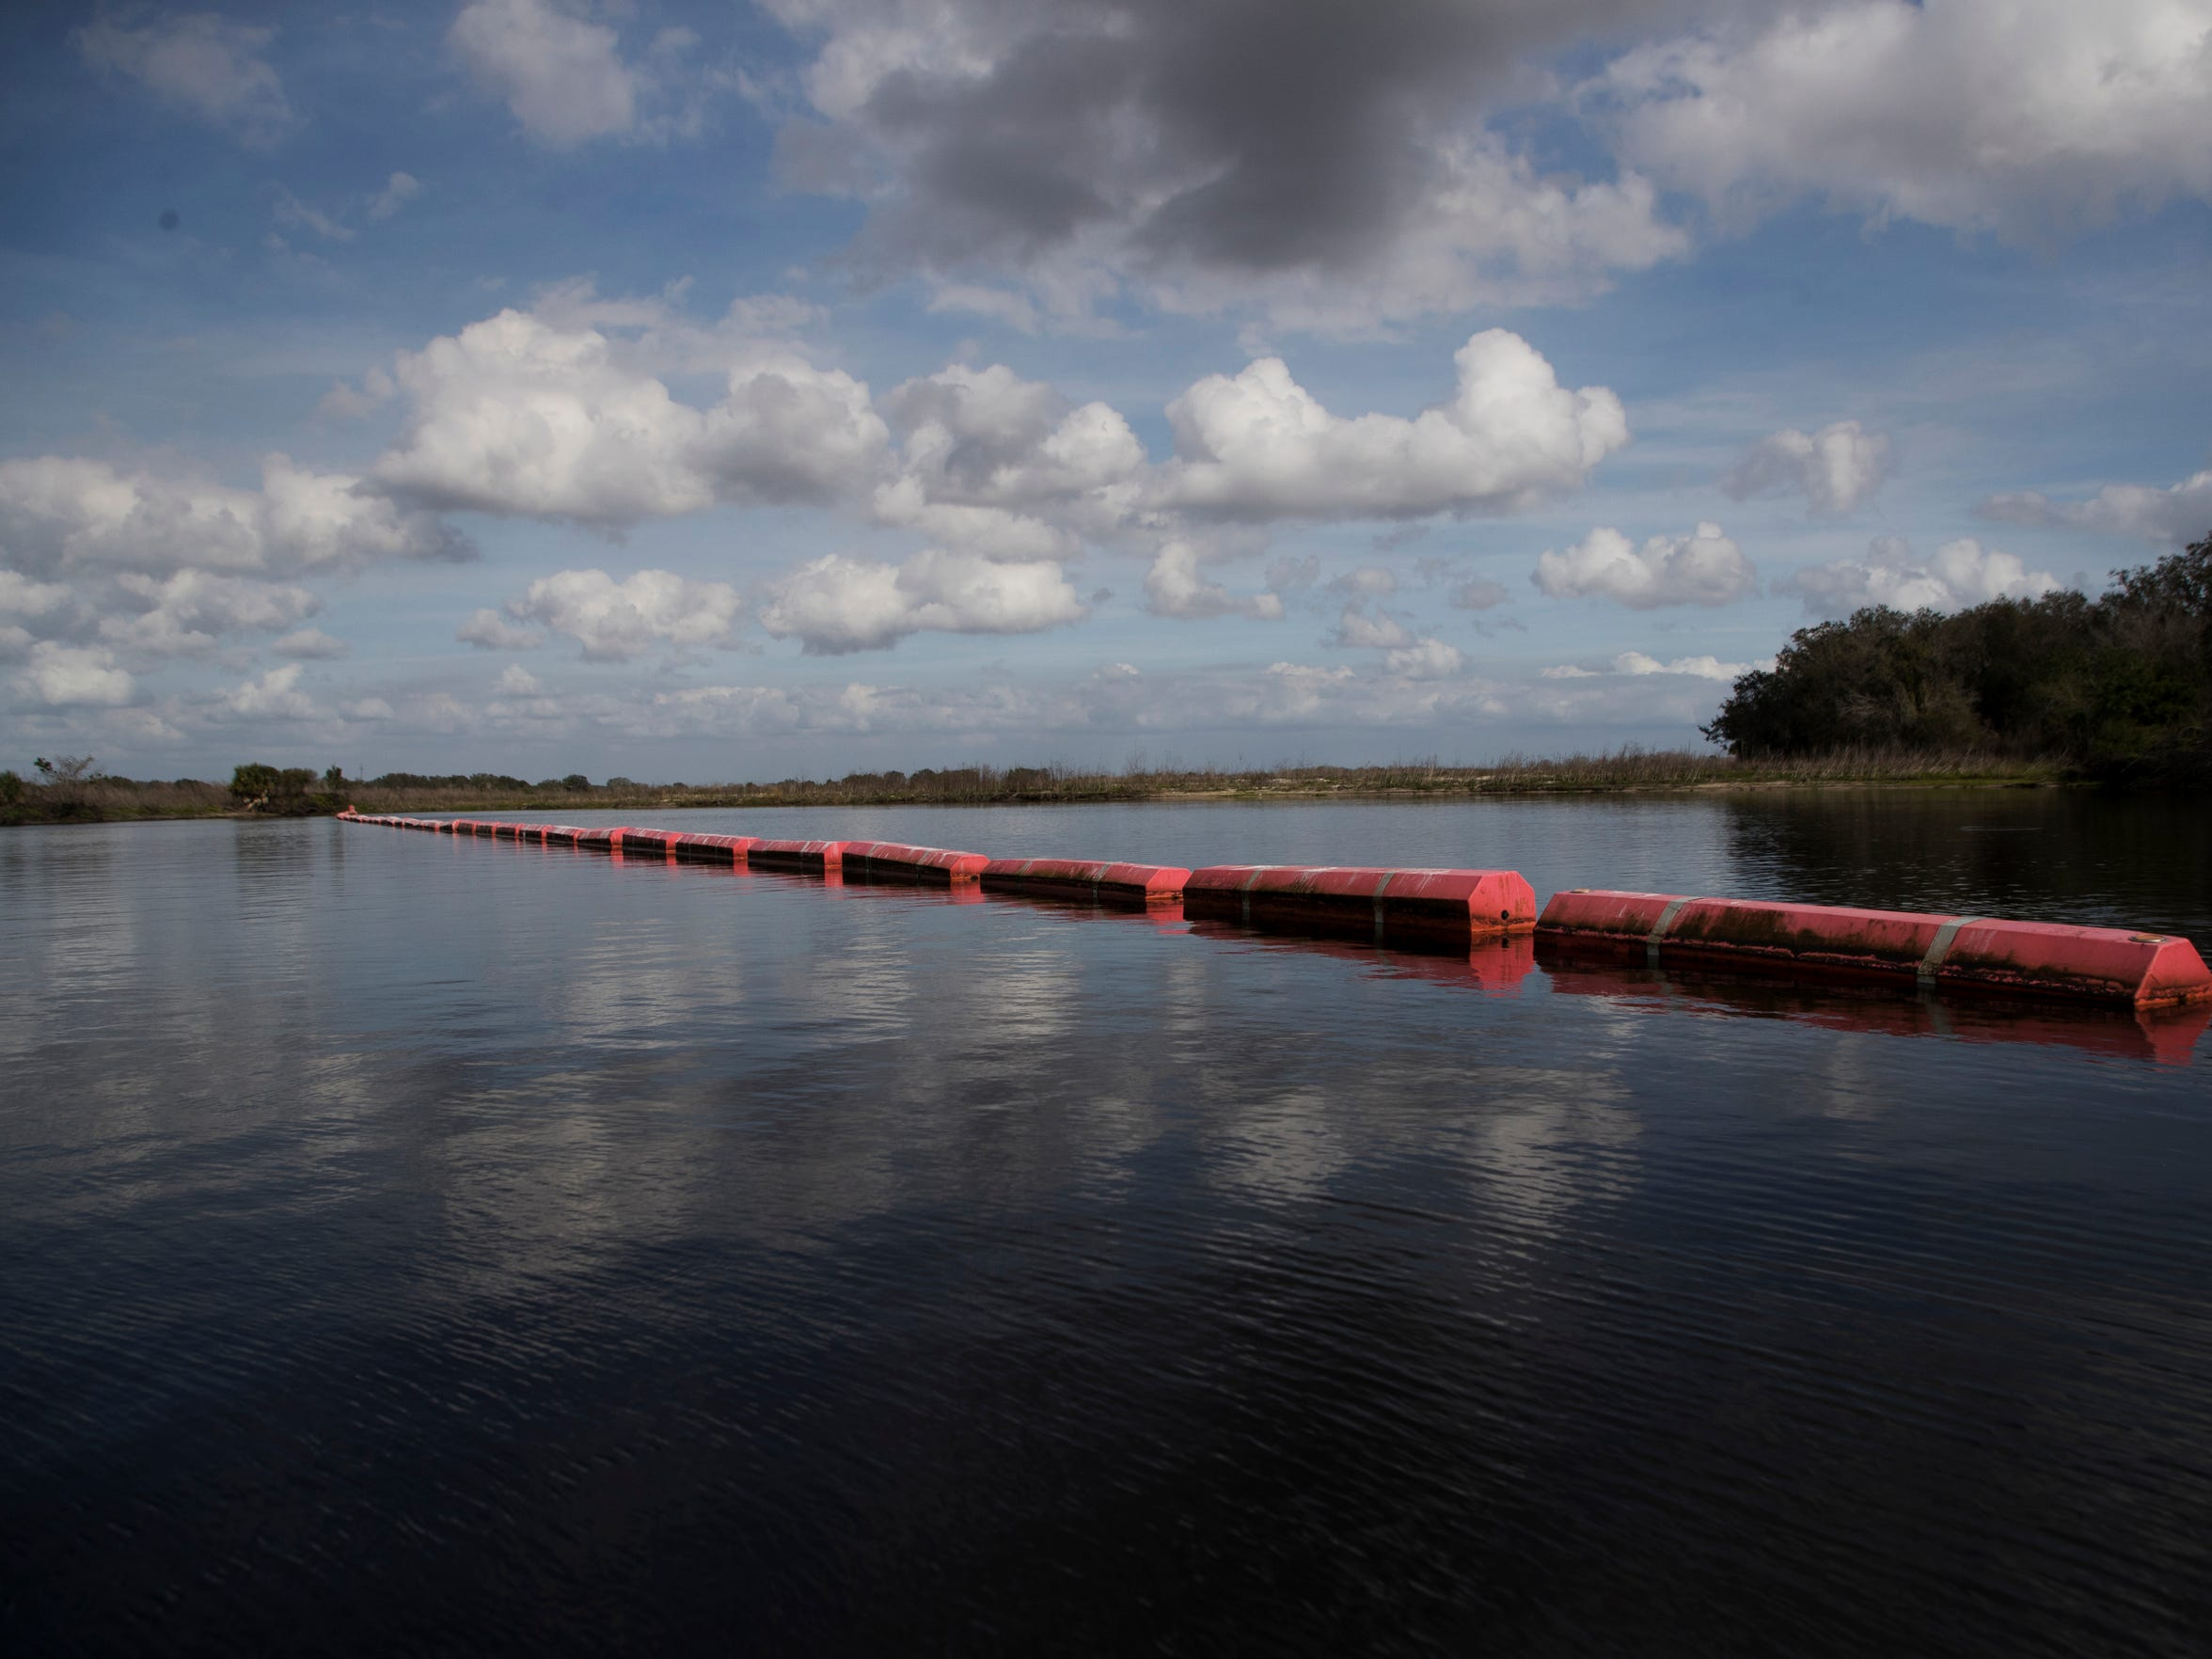 Barriers on the Kissimee River in the restored area keep boaters out of construction zones.